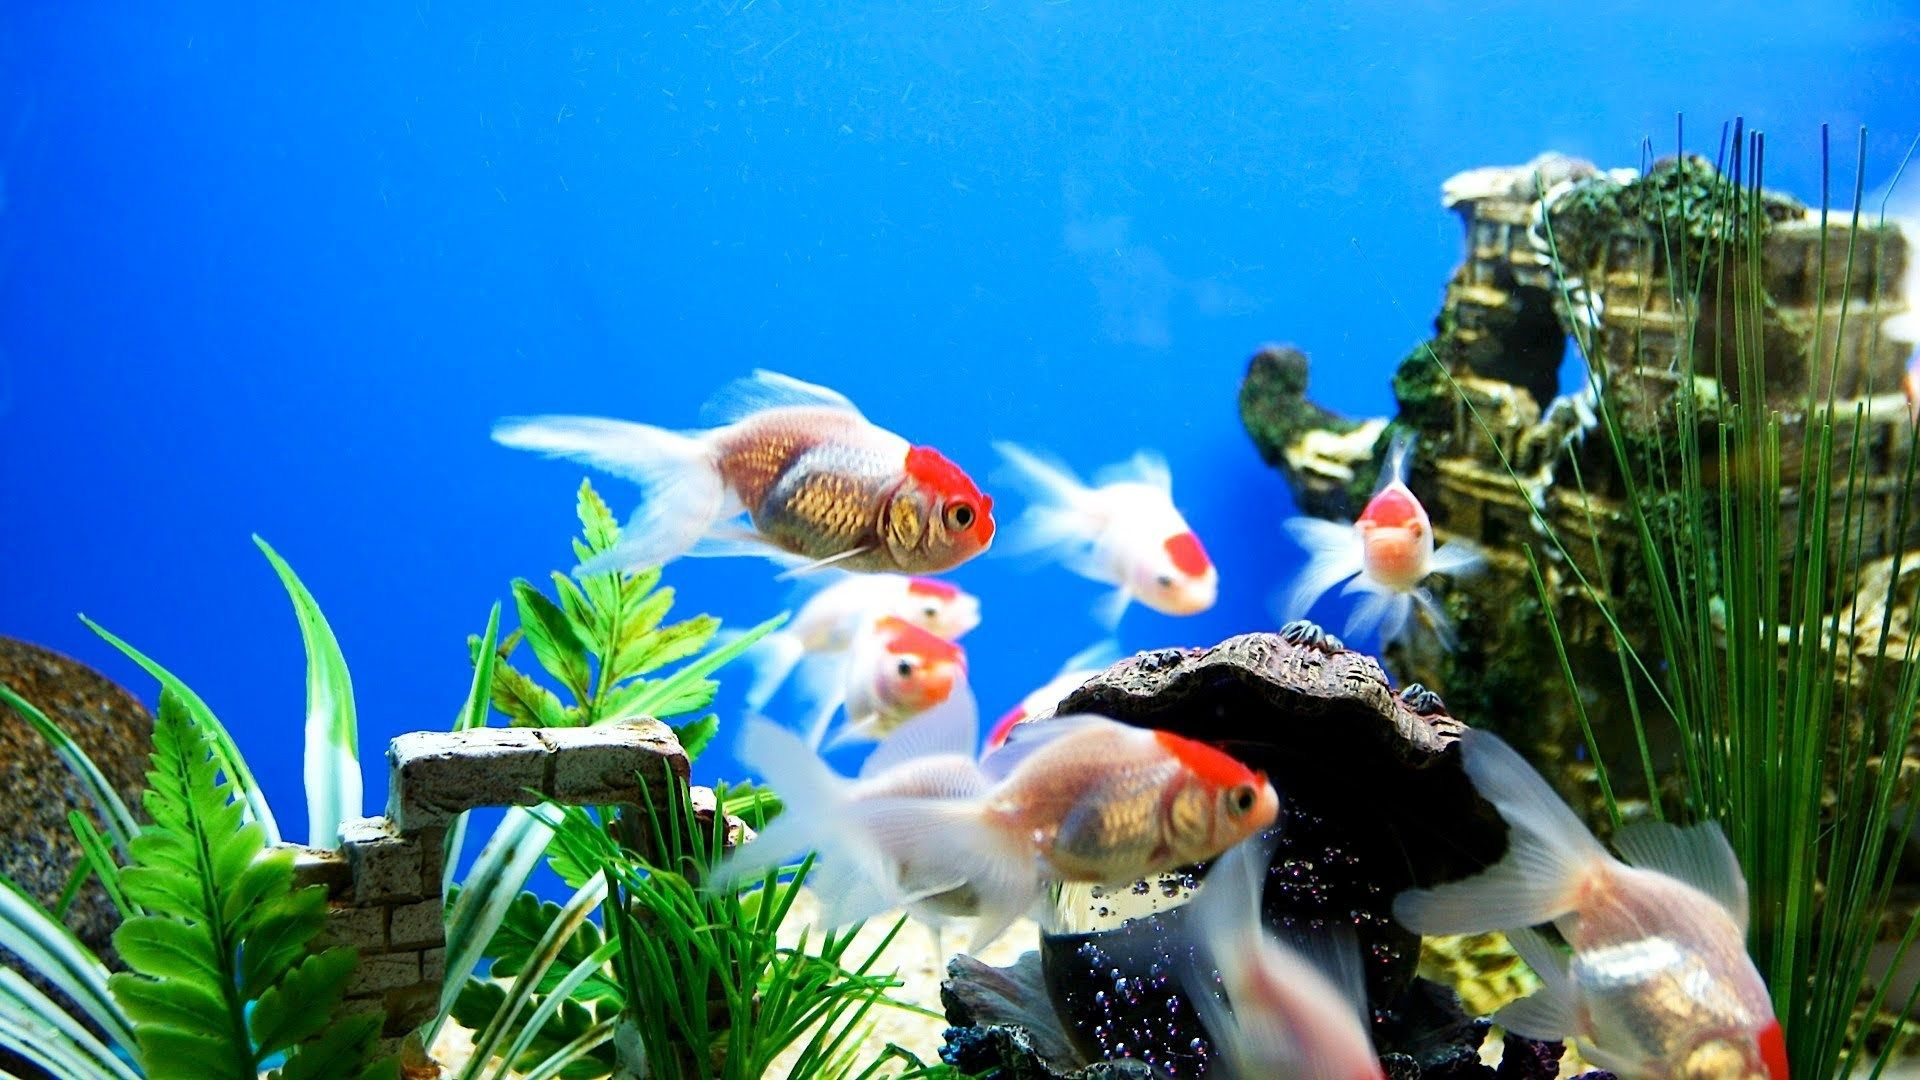 hd aquarium wallpaper o oshenka Pinterest